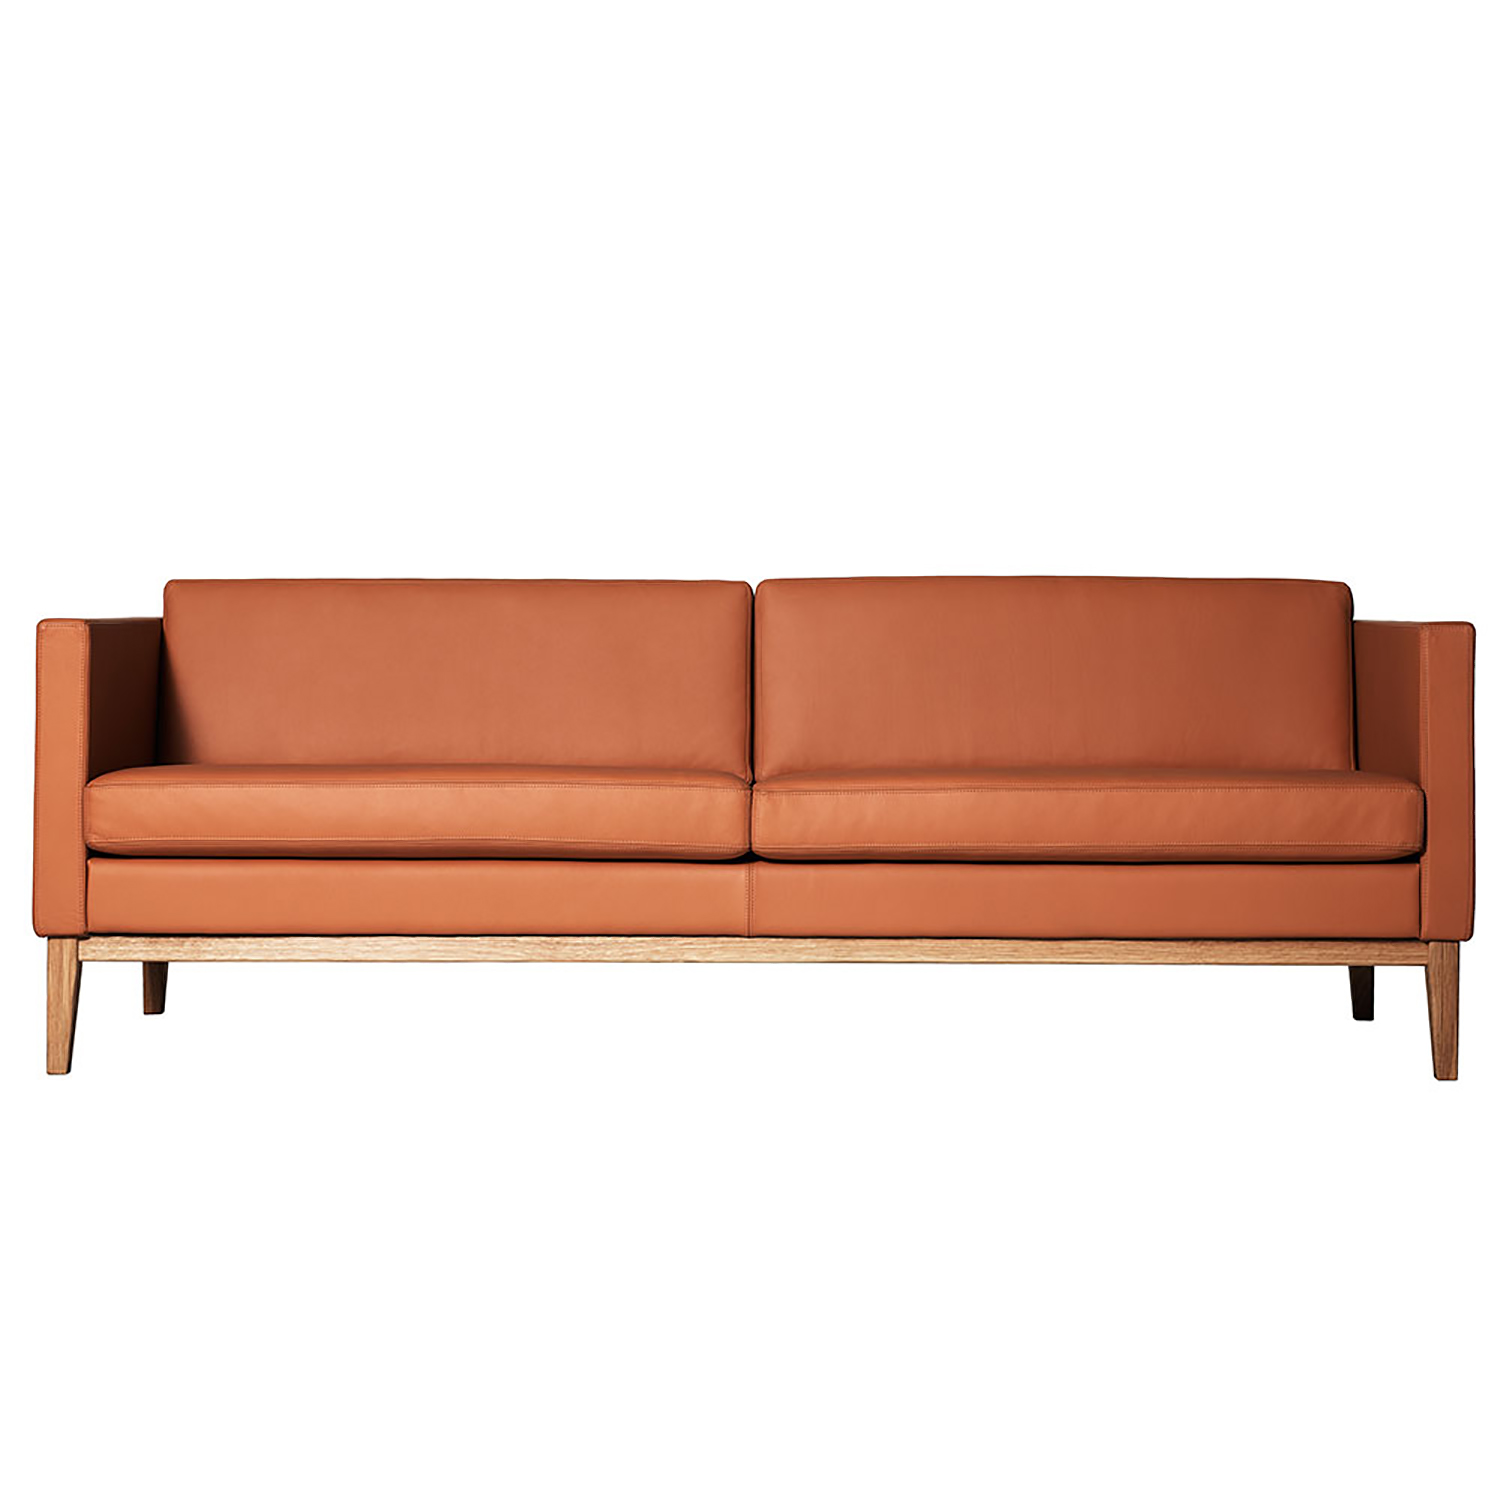 Madison sofa uten knapper, brun